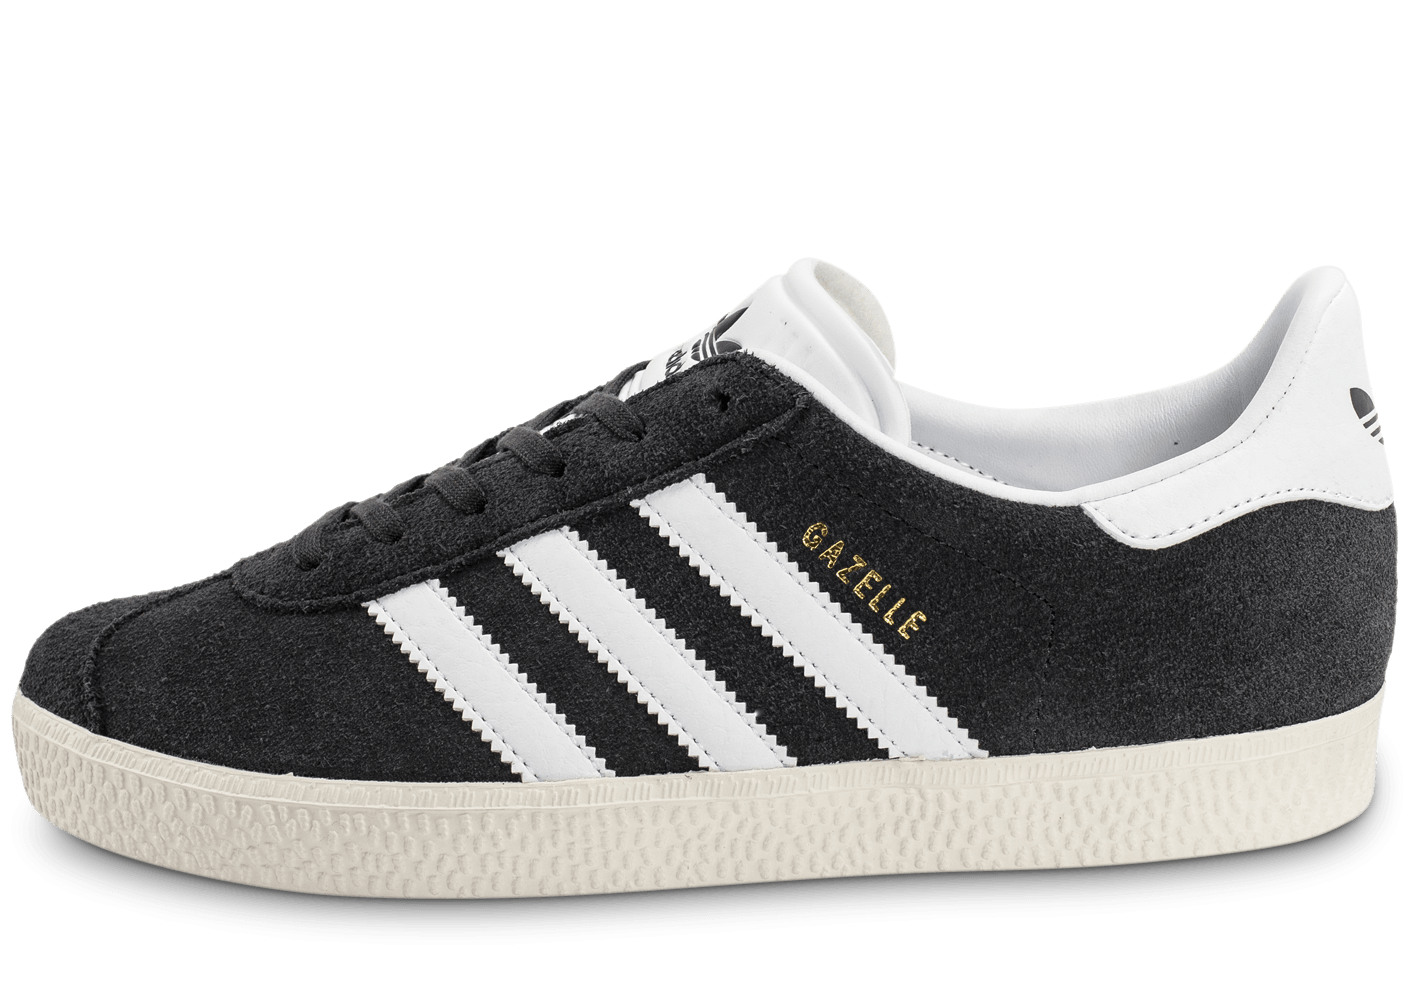 adidas gazelle bronze. Black Bedroom Furniture Sets. Home Design Ideas